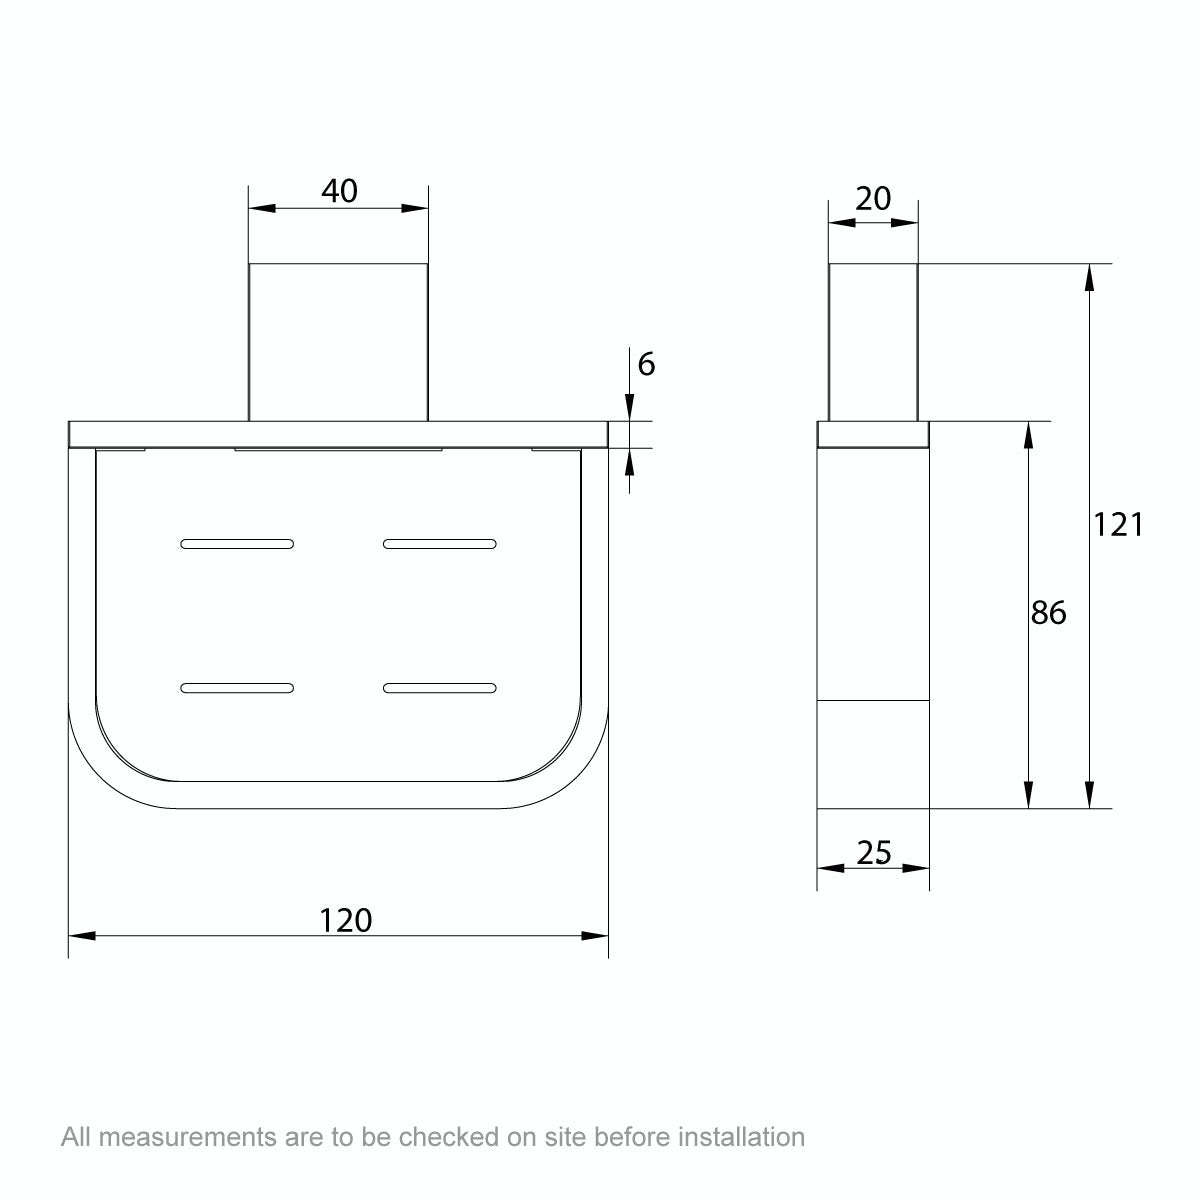 Dimensions for Mode Spencer rose gold soap dish